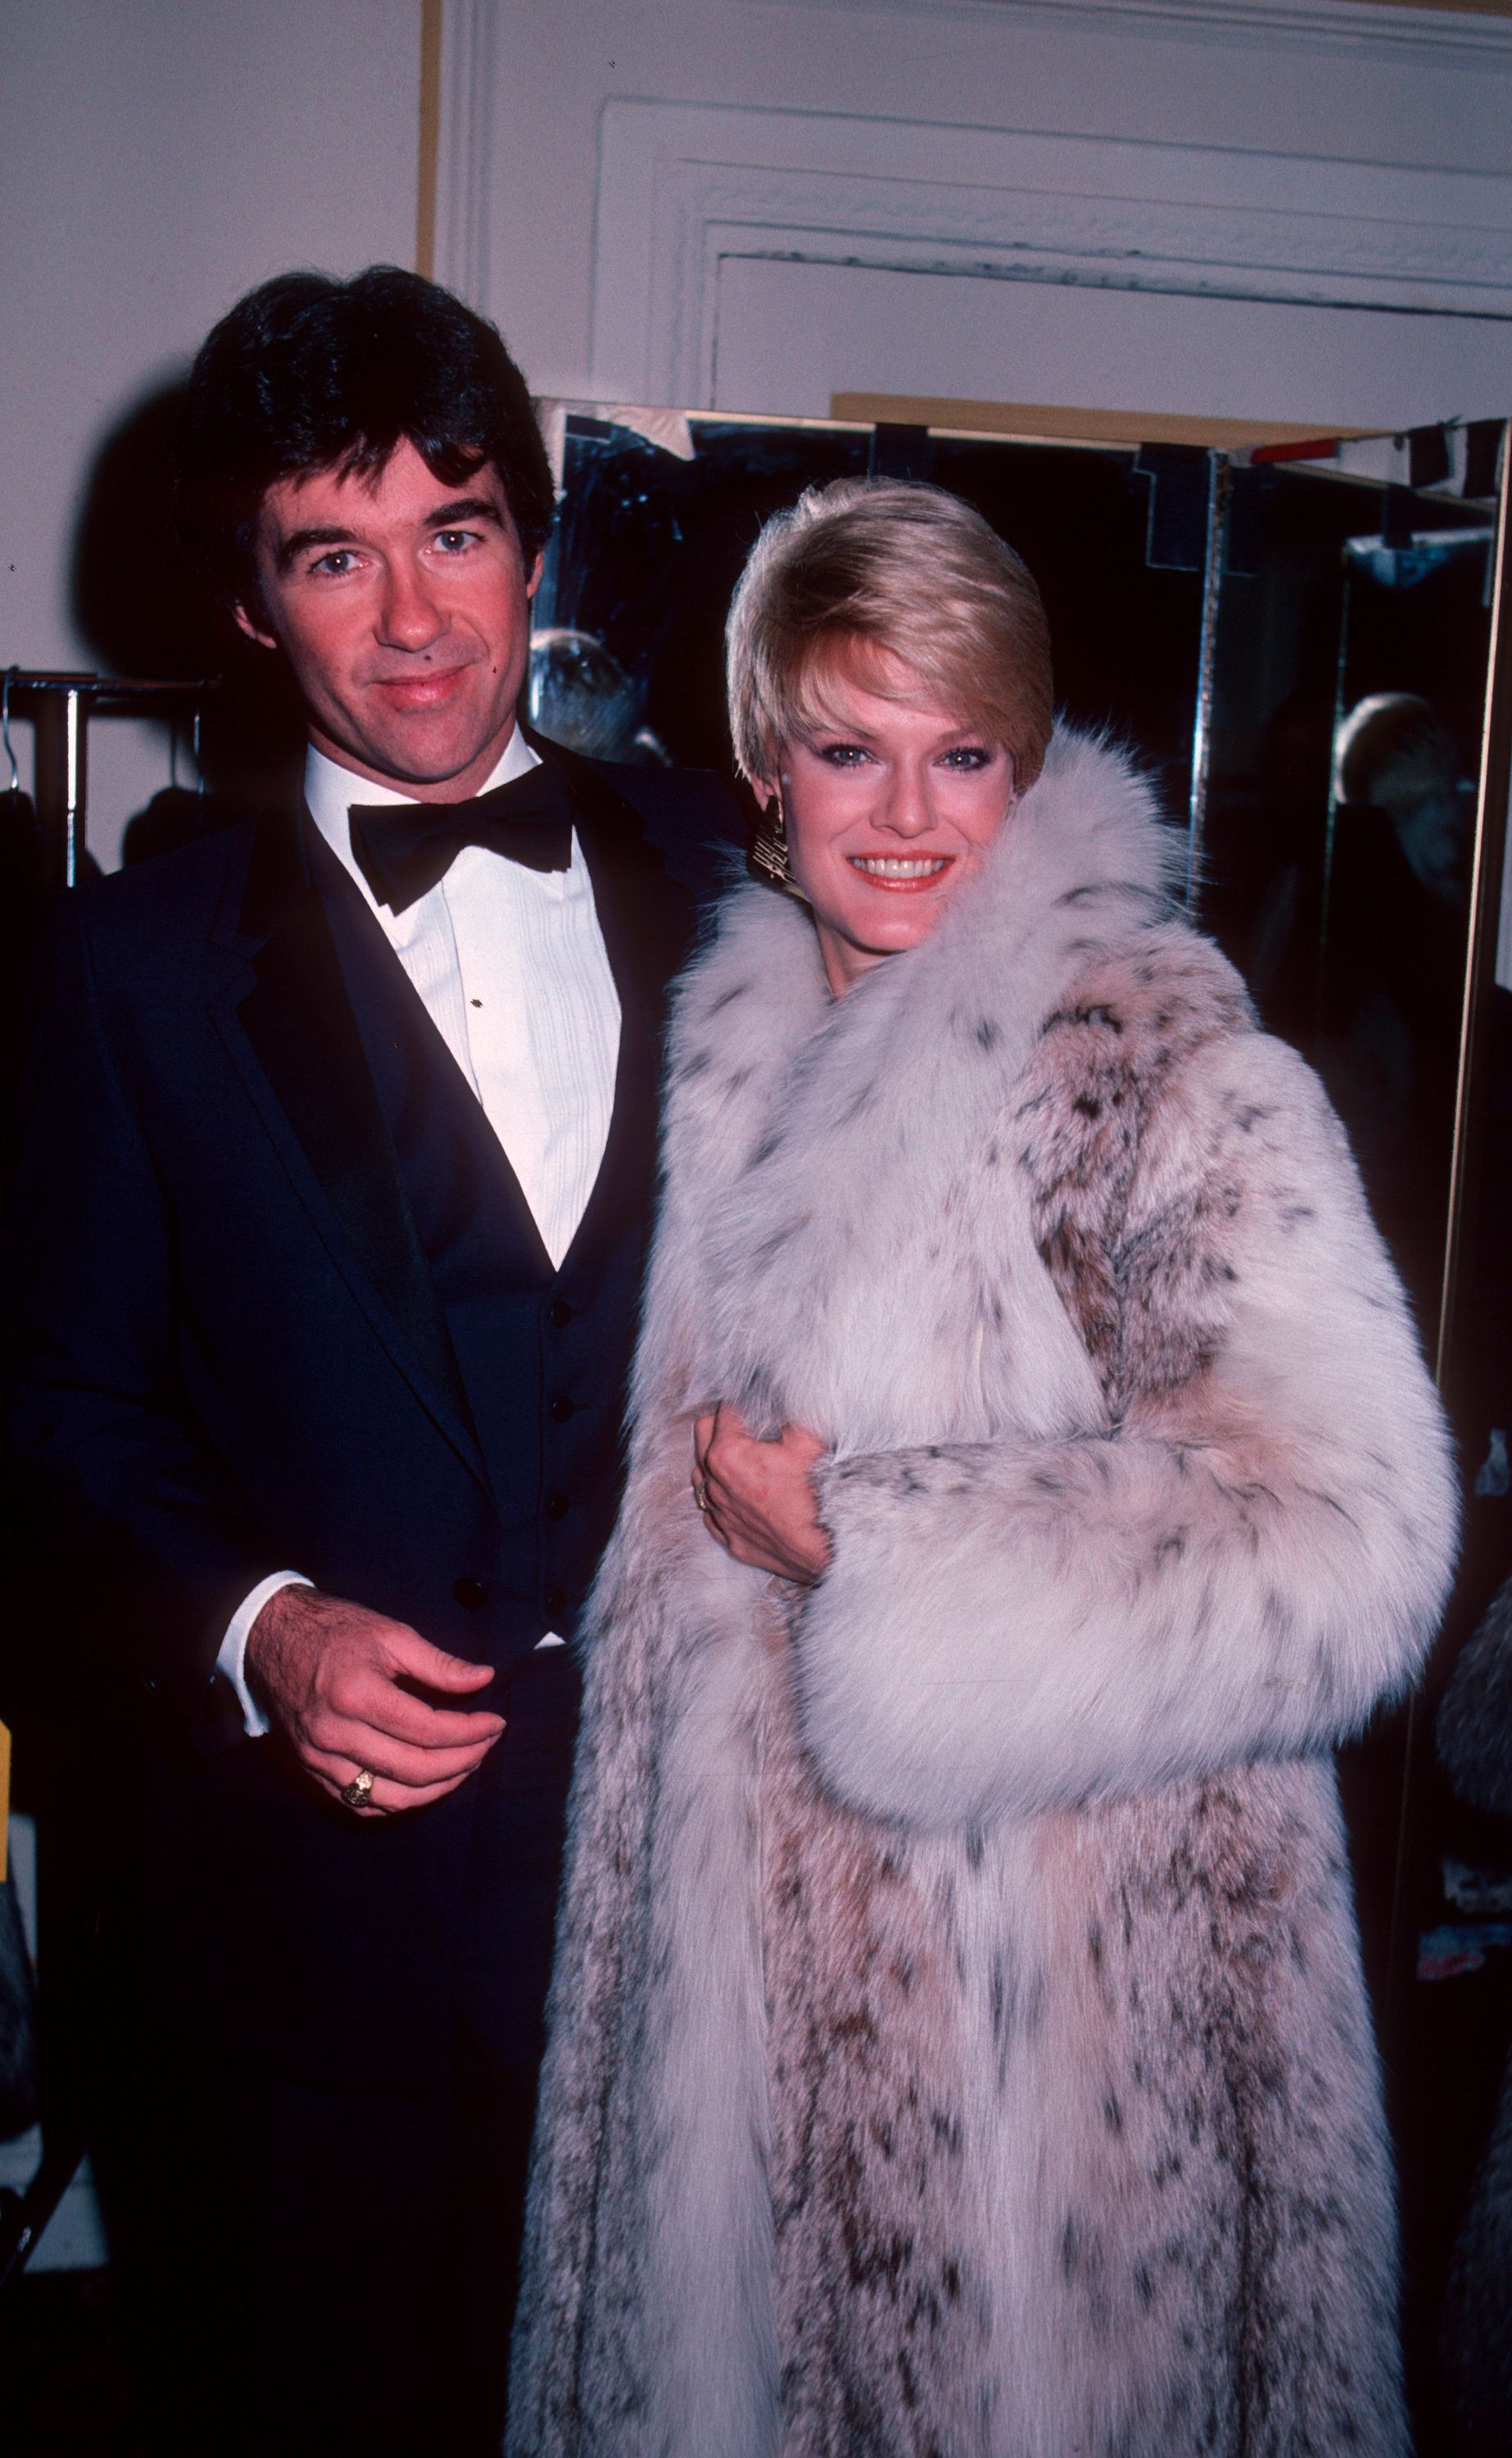 NEW YORK CITY - NOVEMBER 11:  Actor Alan Thicke and wife Gloria Loring attending 10th Annual Promise Ball on November 11, 1982 at the Pierre Hotel in New York City, New York. (Photo by Ron Galella/WireImage)